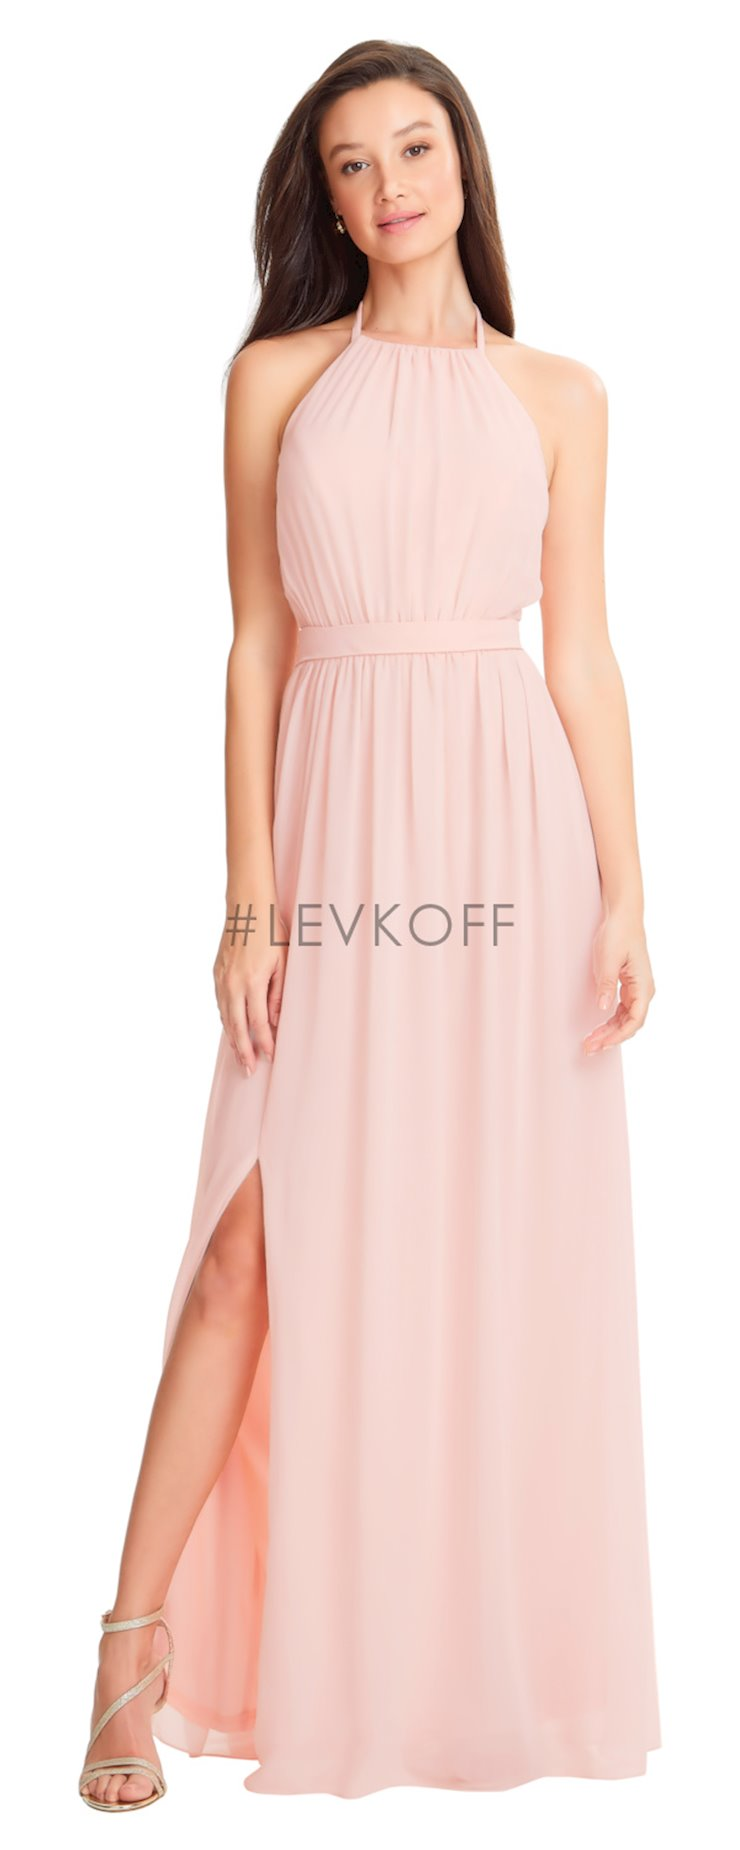 Bill Levkoff Style #7053 Image